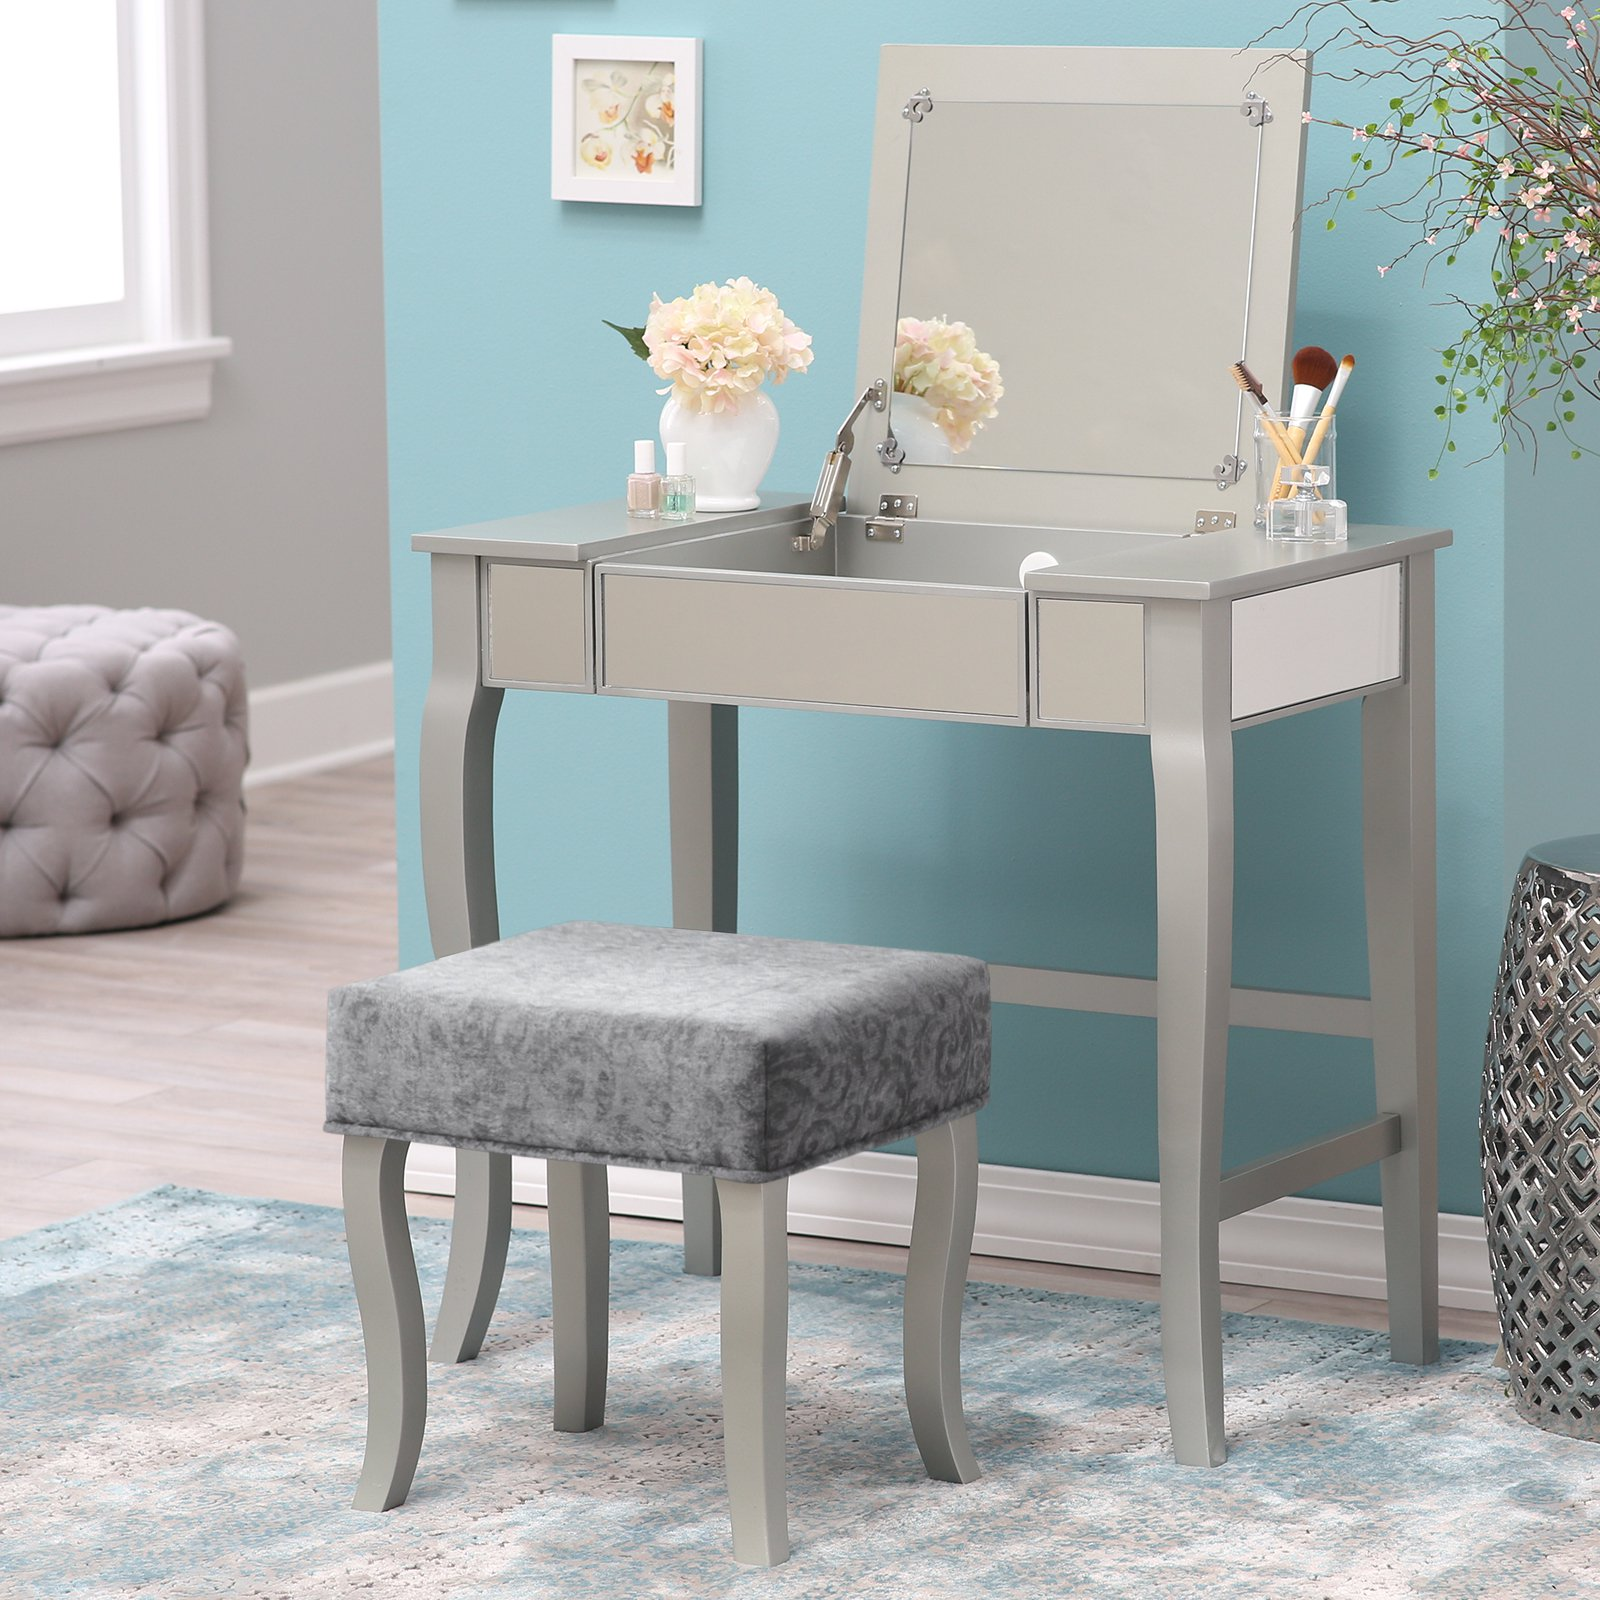 Cute mirrored vanity for home furniture and vanity mirror with lights